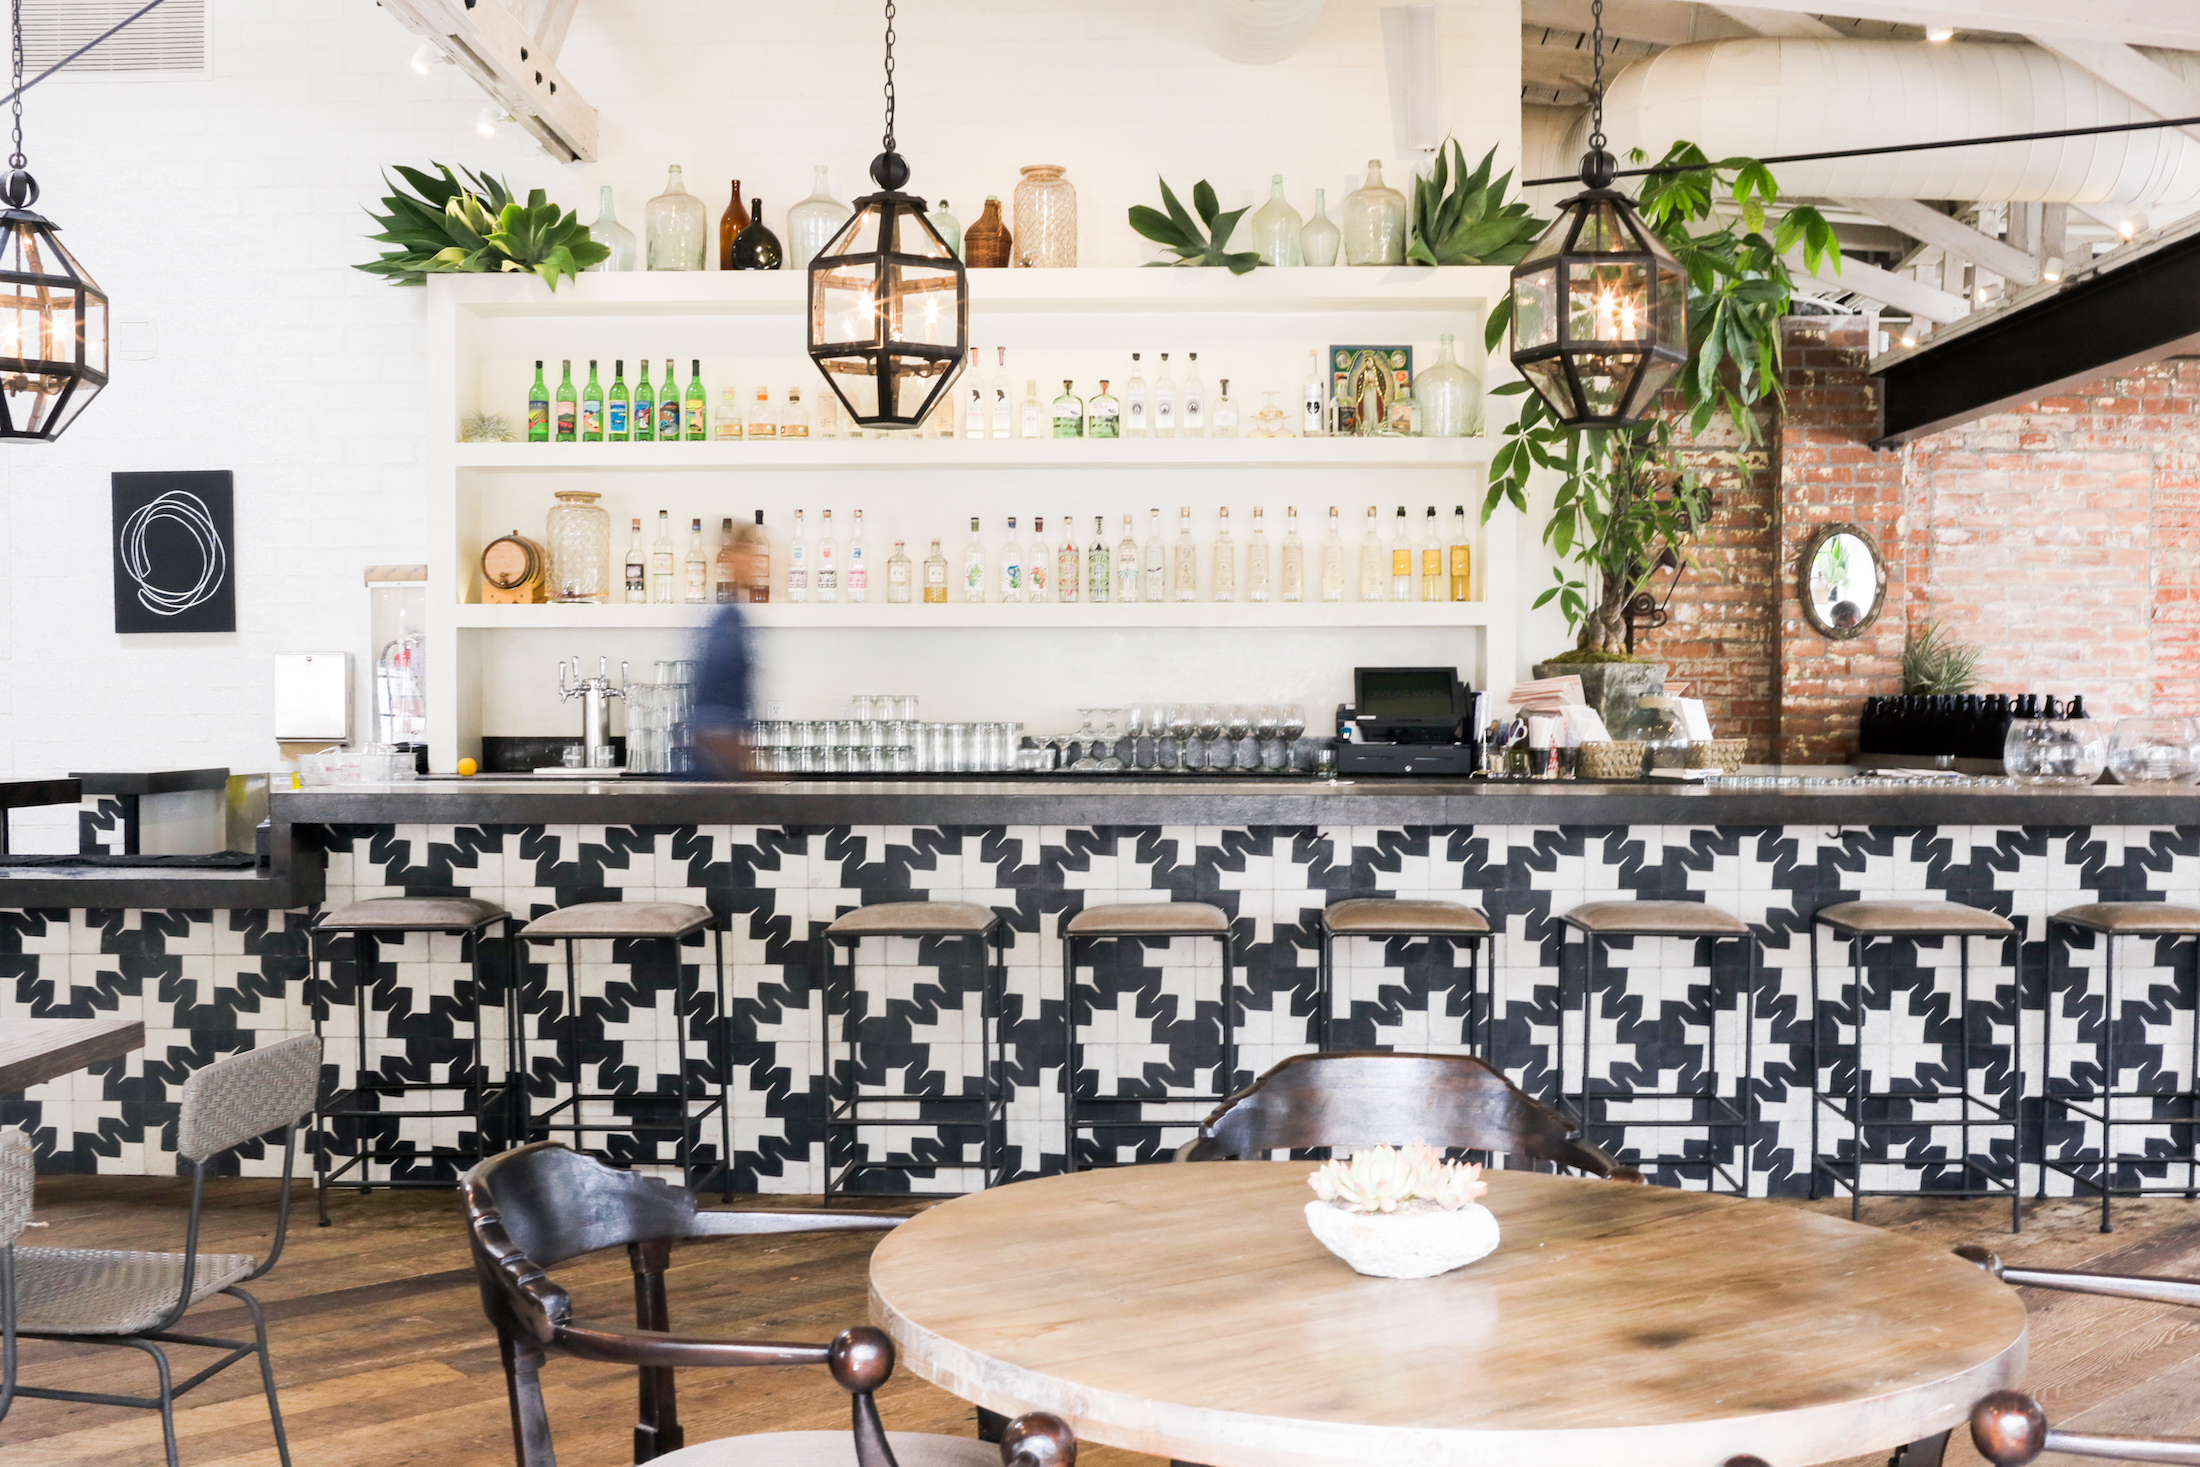 """I love this plant based Mexican food spot in West Hollywood for a casual meal with girlfriends.  Garcia Madres interior is gorgeous with cement tiles and a clean California modern feel to it. The food makes you think you could easily go vegan which is clearly a testament to how good it is. Also, the cheery """"instagrammable"""" cocktails are a must for a great girls night."""